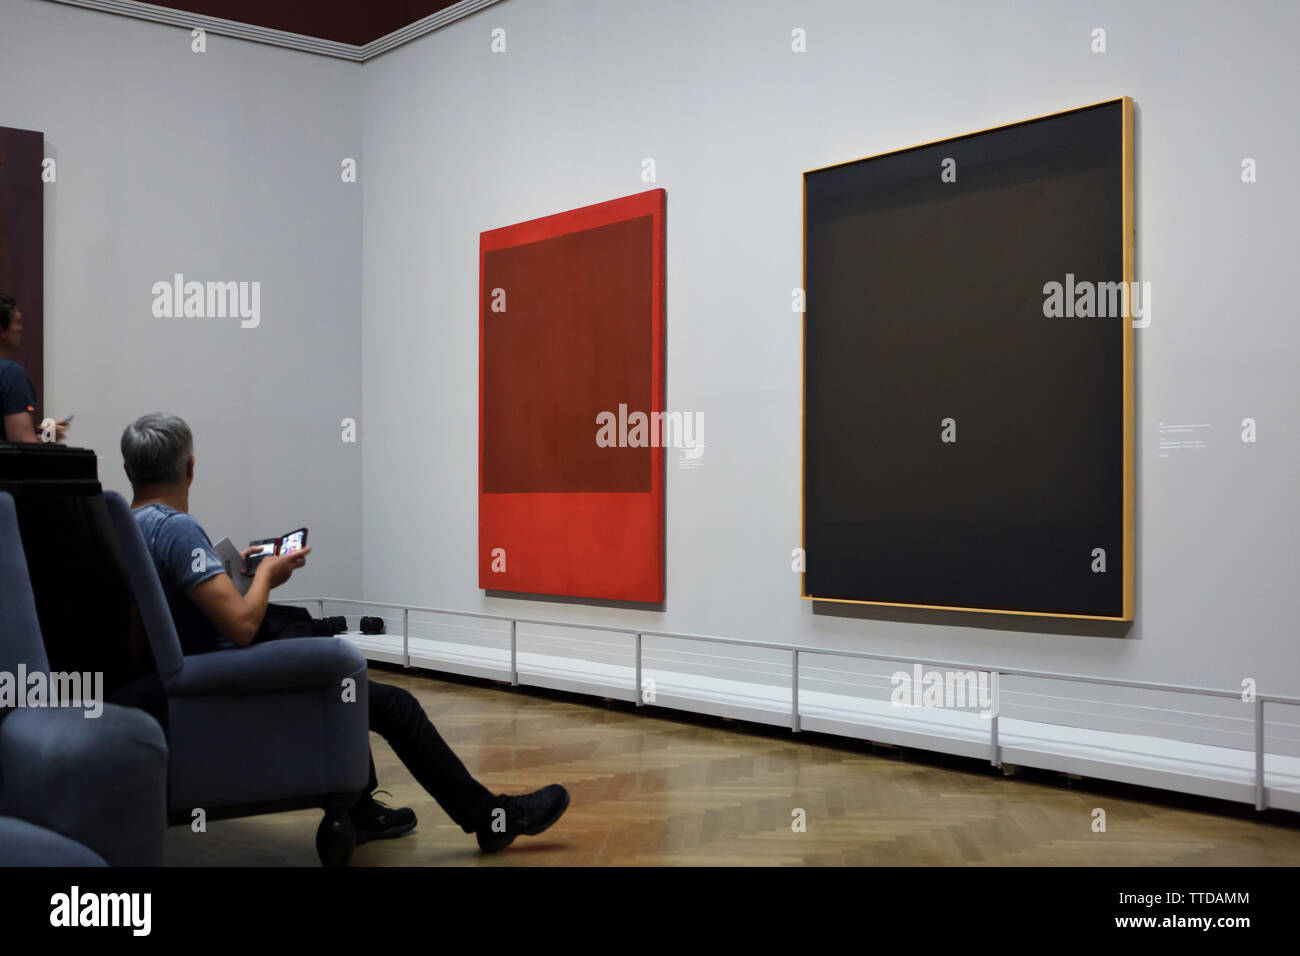 Visitors in front of the paintings by American abstract expressionist painter Mark Rothko displayed at his retrospective exhibition in the Kunsthistorisches Museum (Museum of Art History) in Vienna, Austria. The exhibition runs till 30 June 2019. Stock Photo